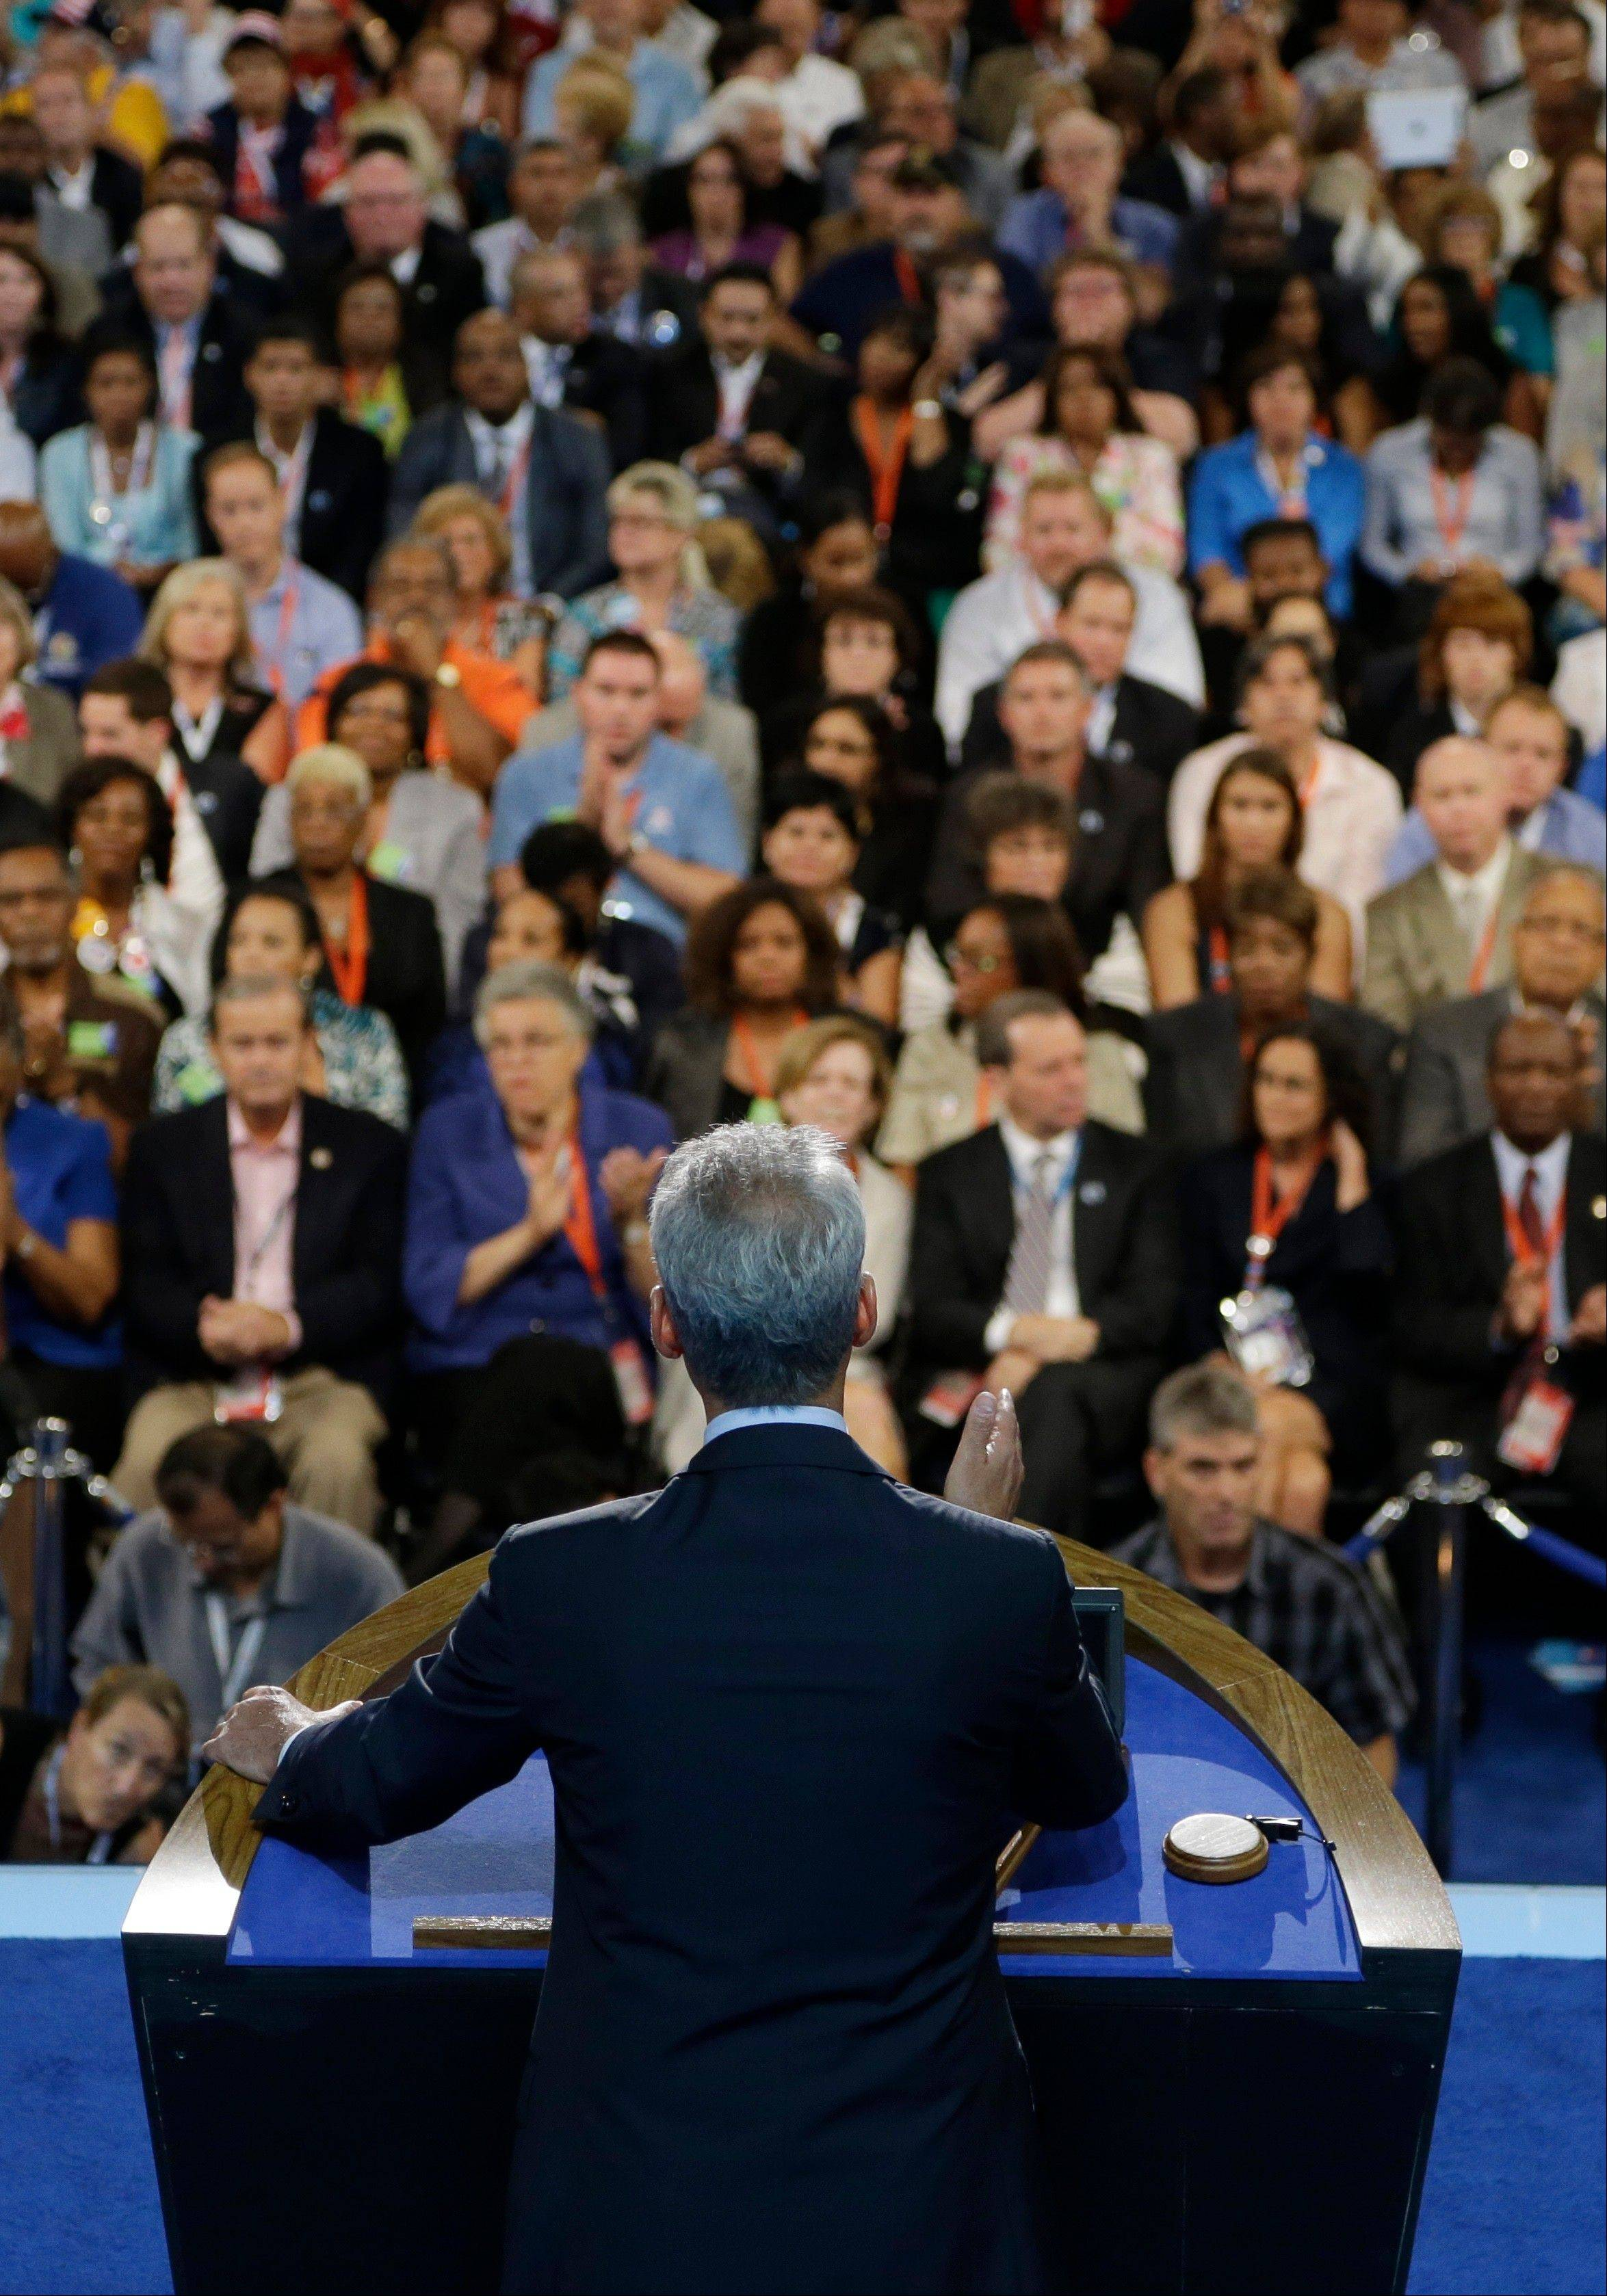 Chicago Mayor Rahm Emanuel speaks to delegates at the Democratic National Convention in Charlotte, N.C., on Tuesday, Sept. 4, 2012.